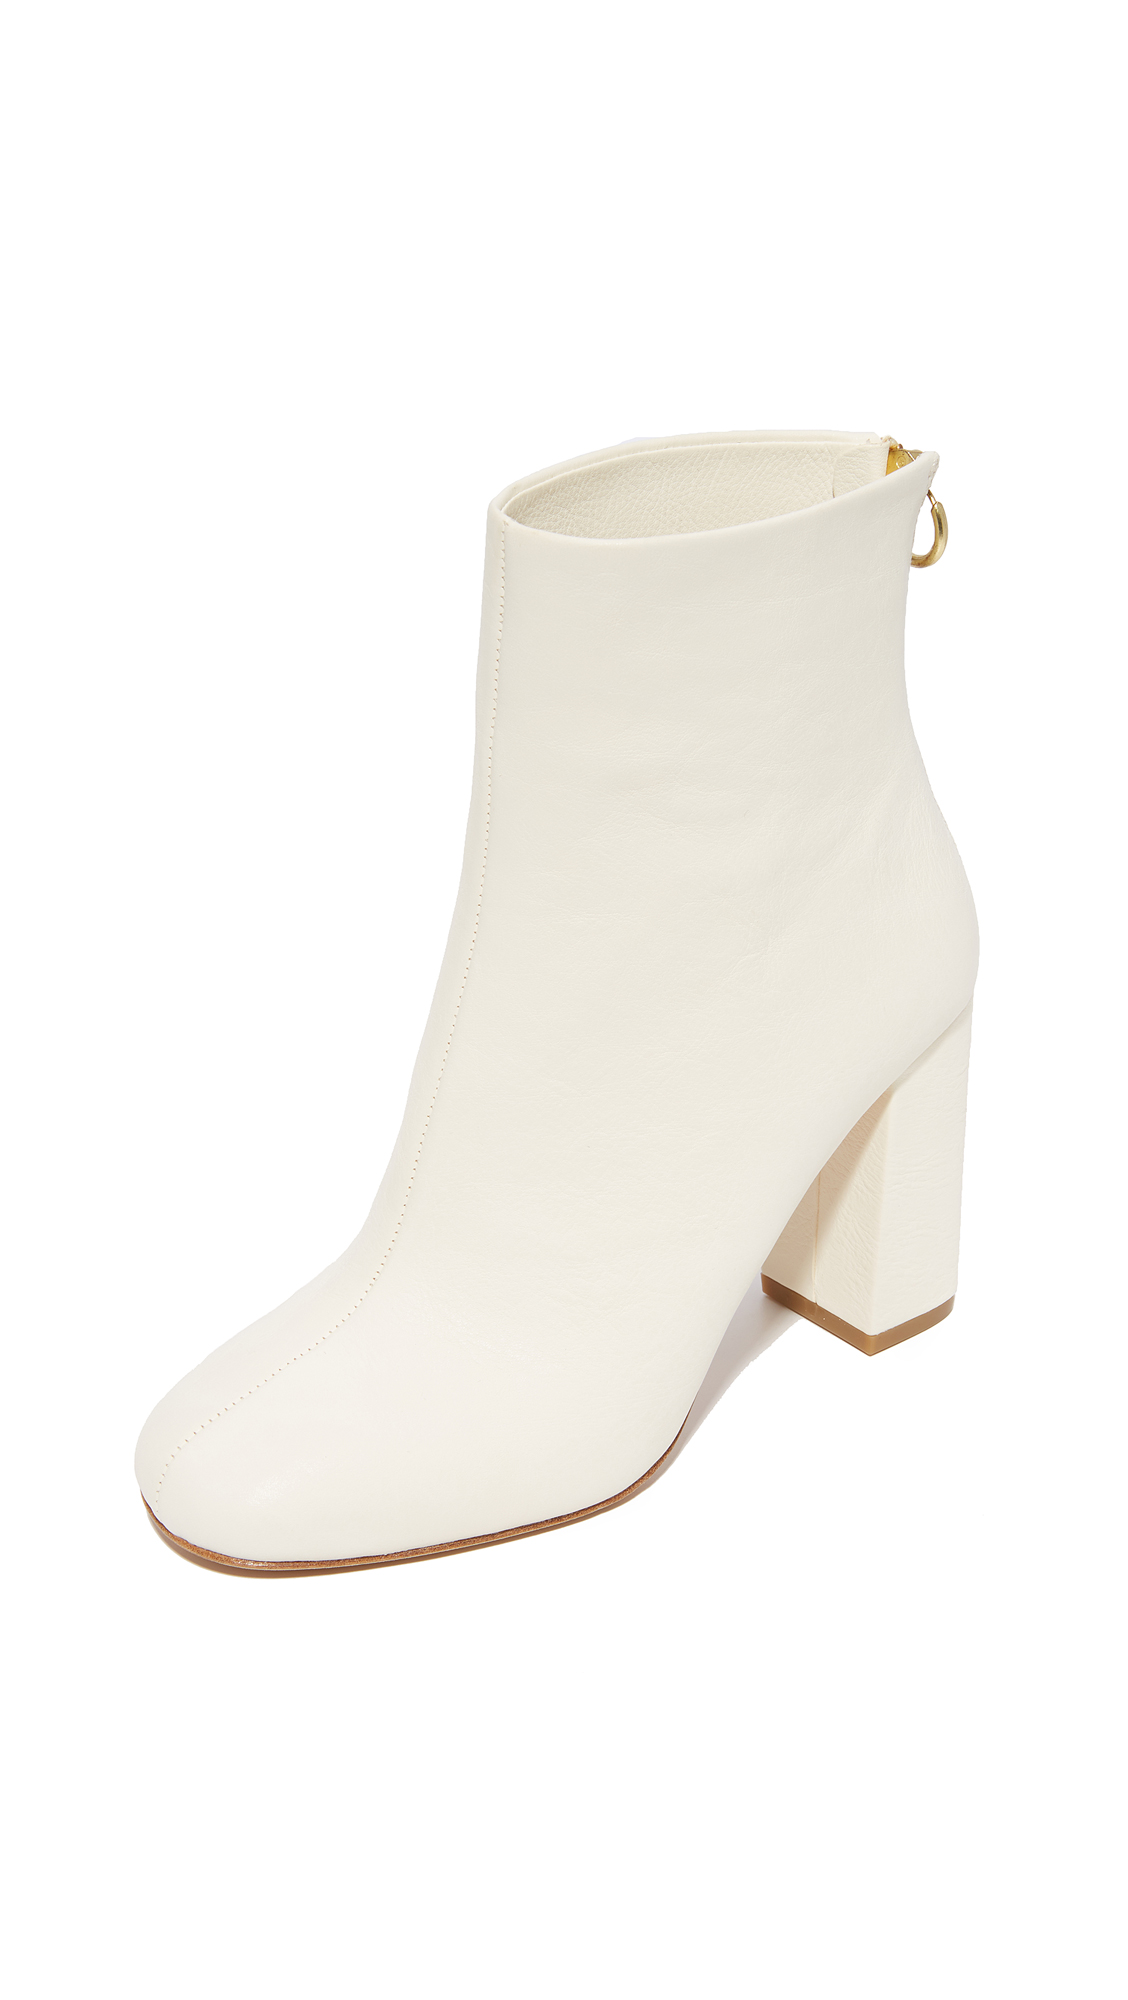 Joie Saleema Booties - Shell